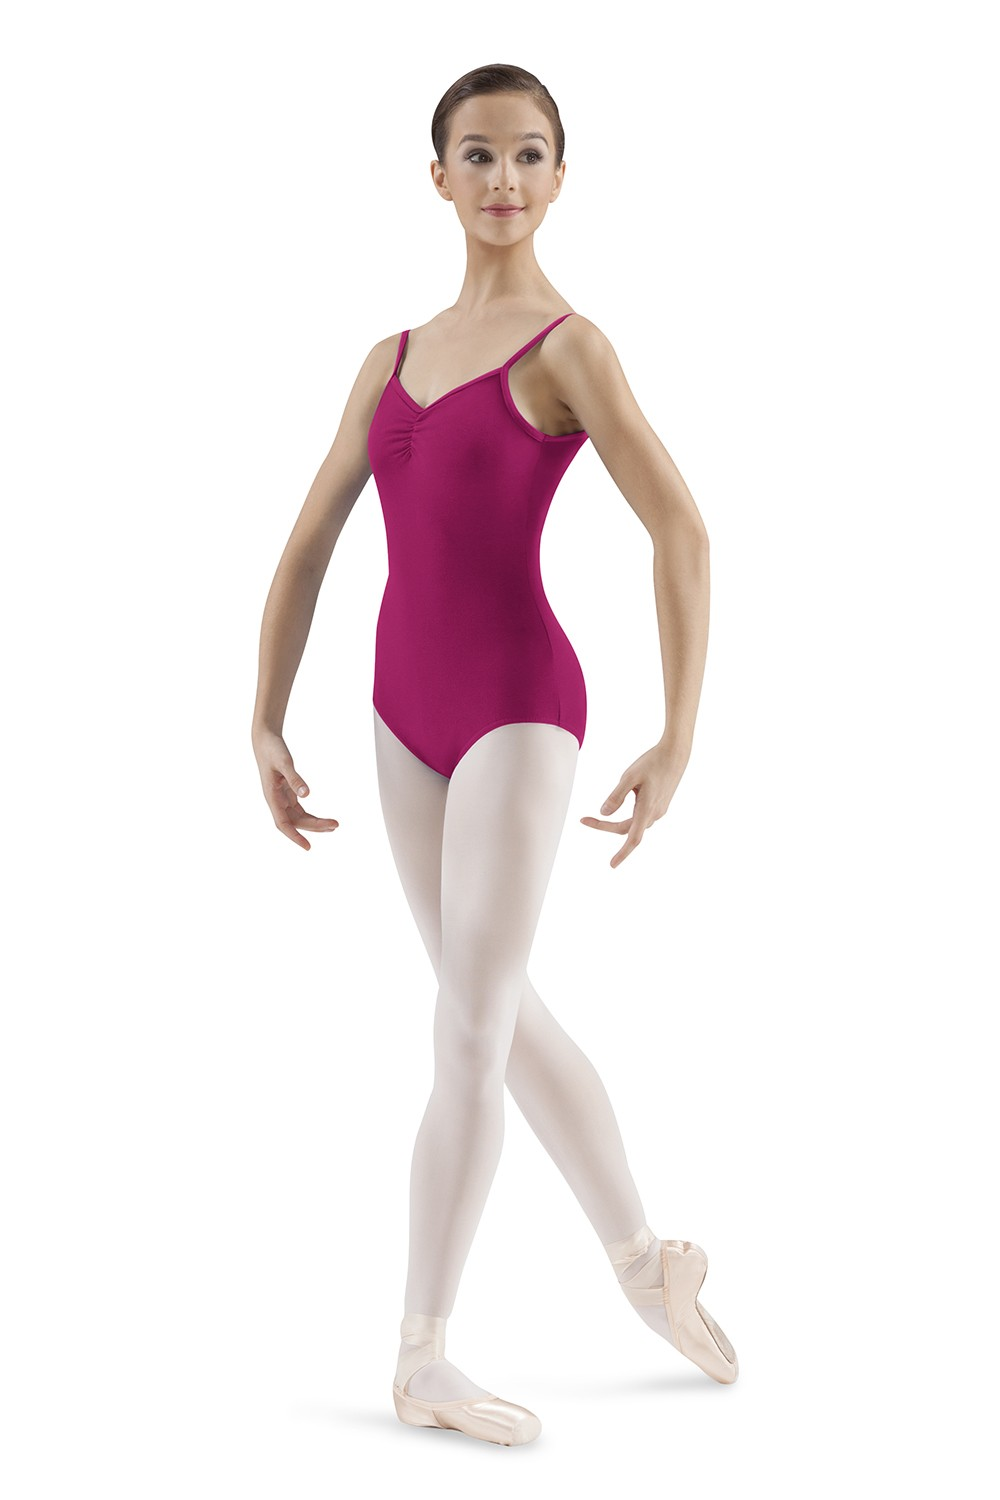 Body A Spallina Sottile Con Scollo A V Women's Dance Leotards